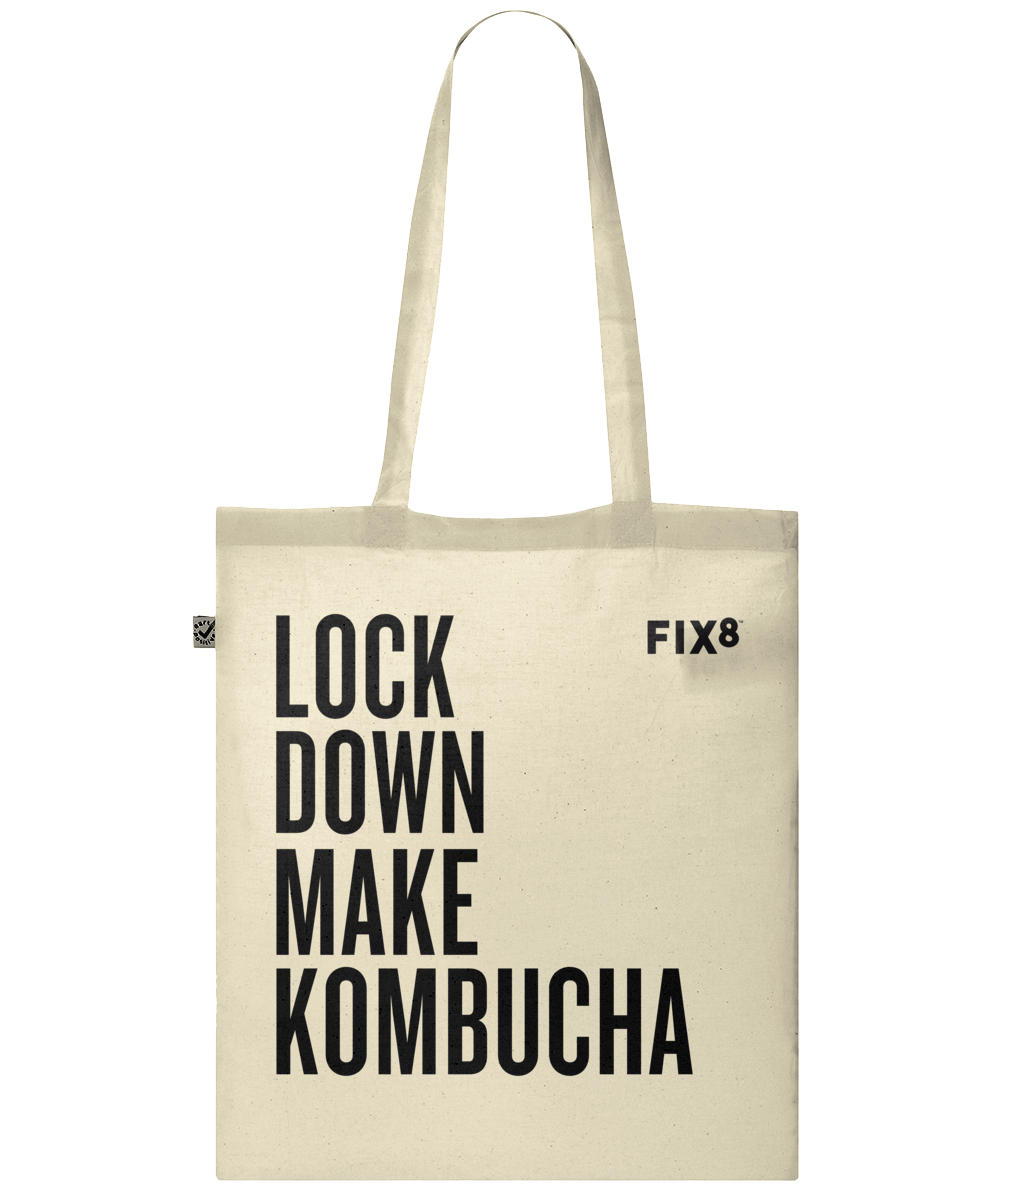 Lock Down Make Kombucha Organic Tote Bag - Fix8